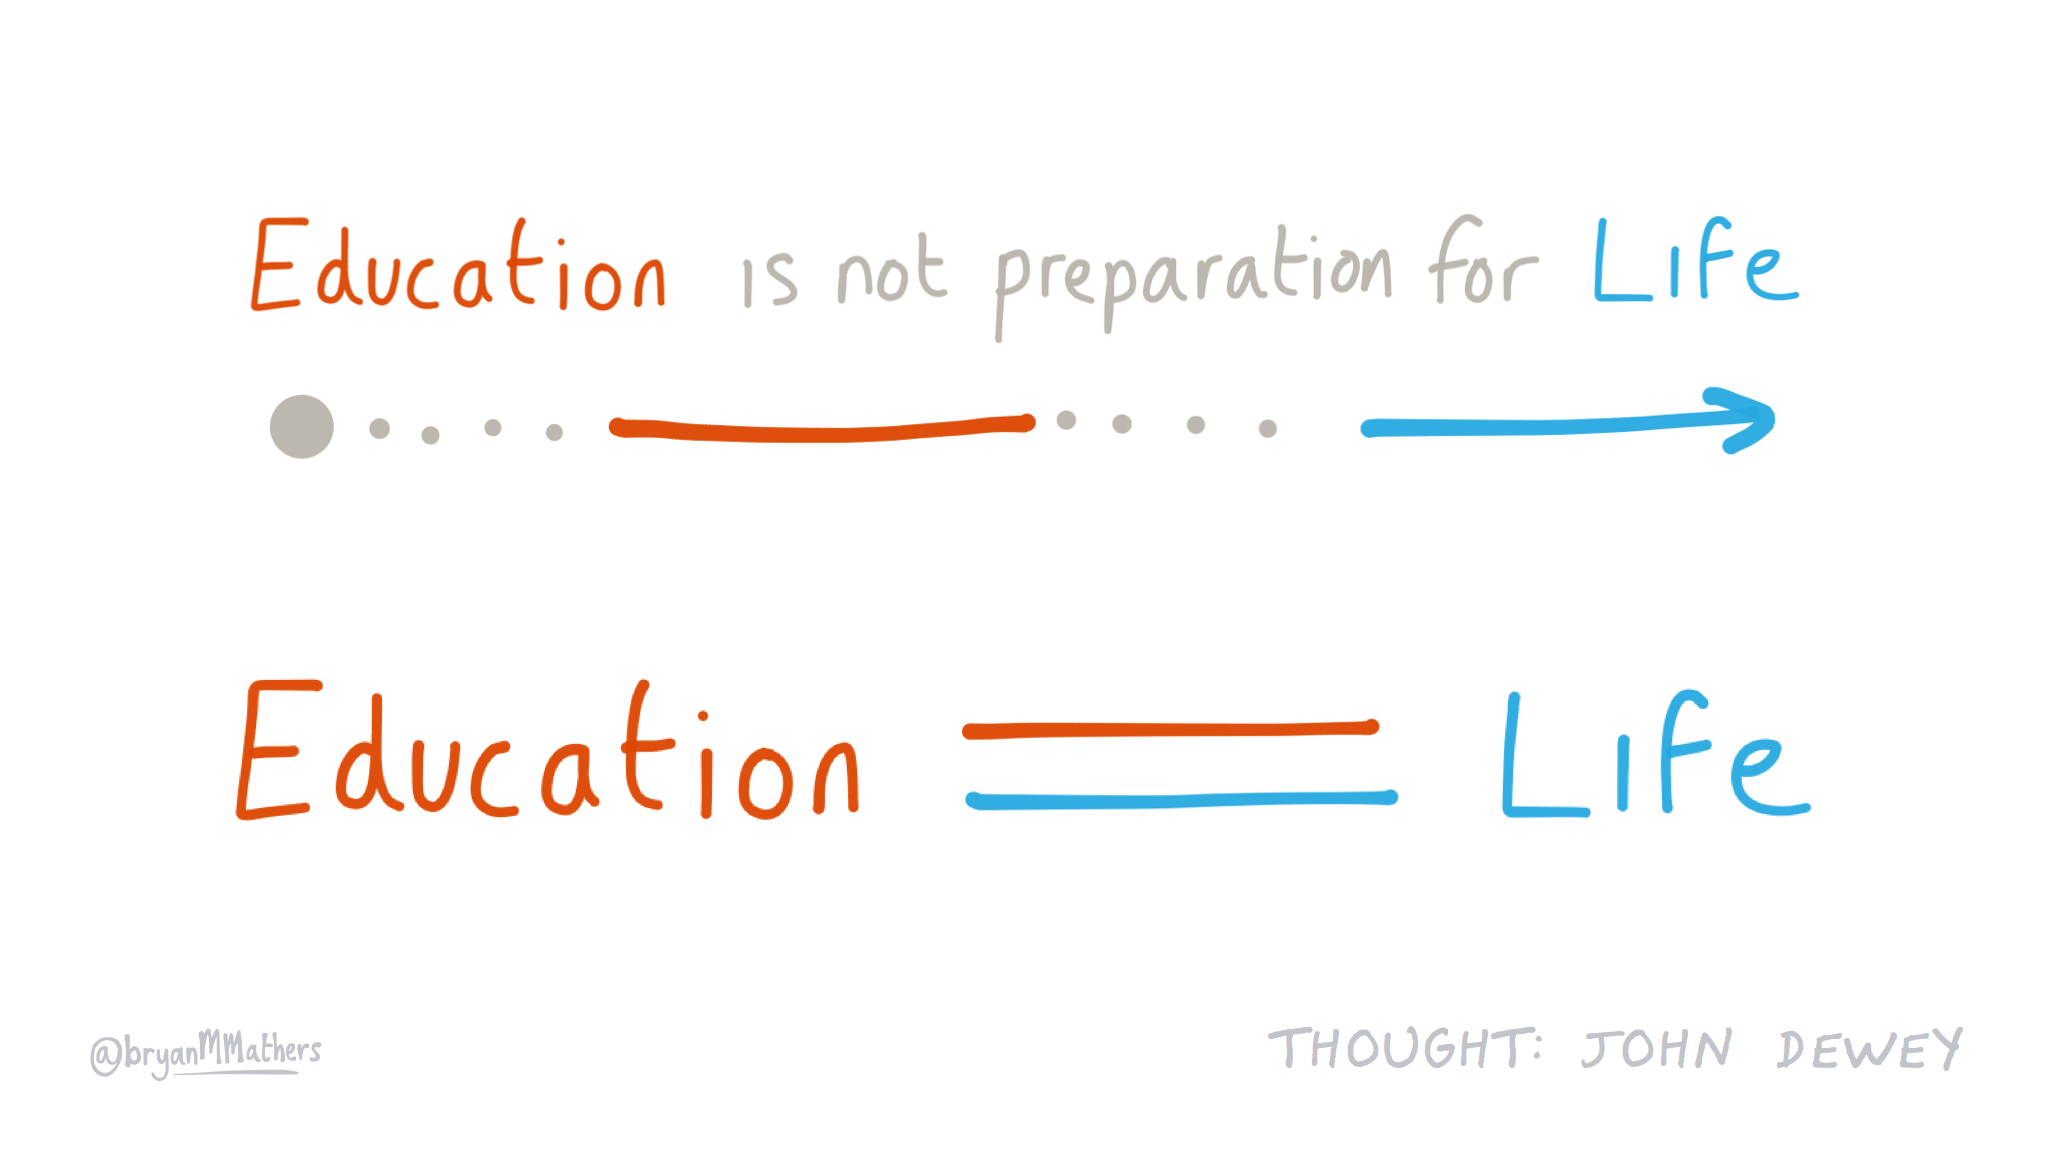 Education is life…